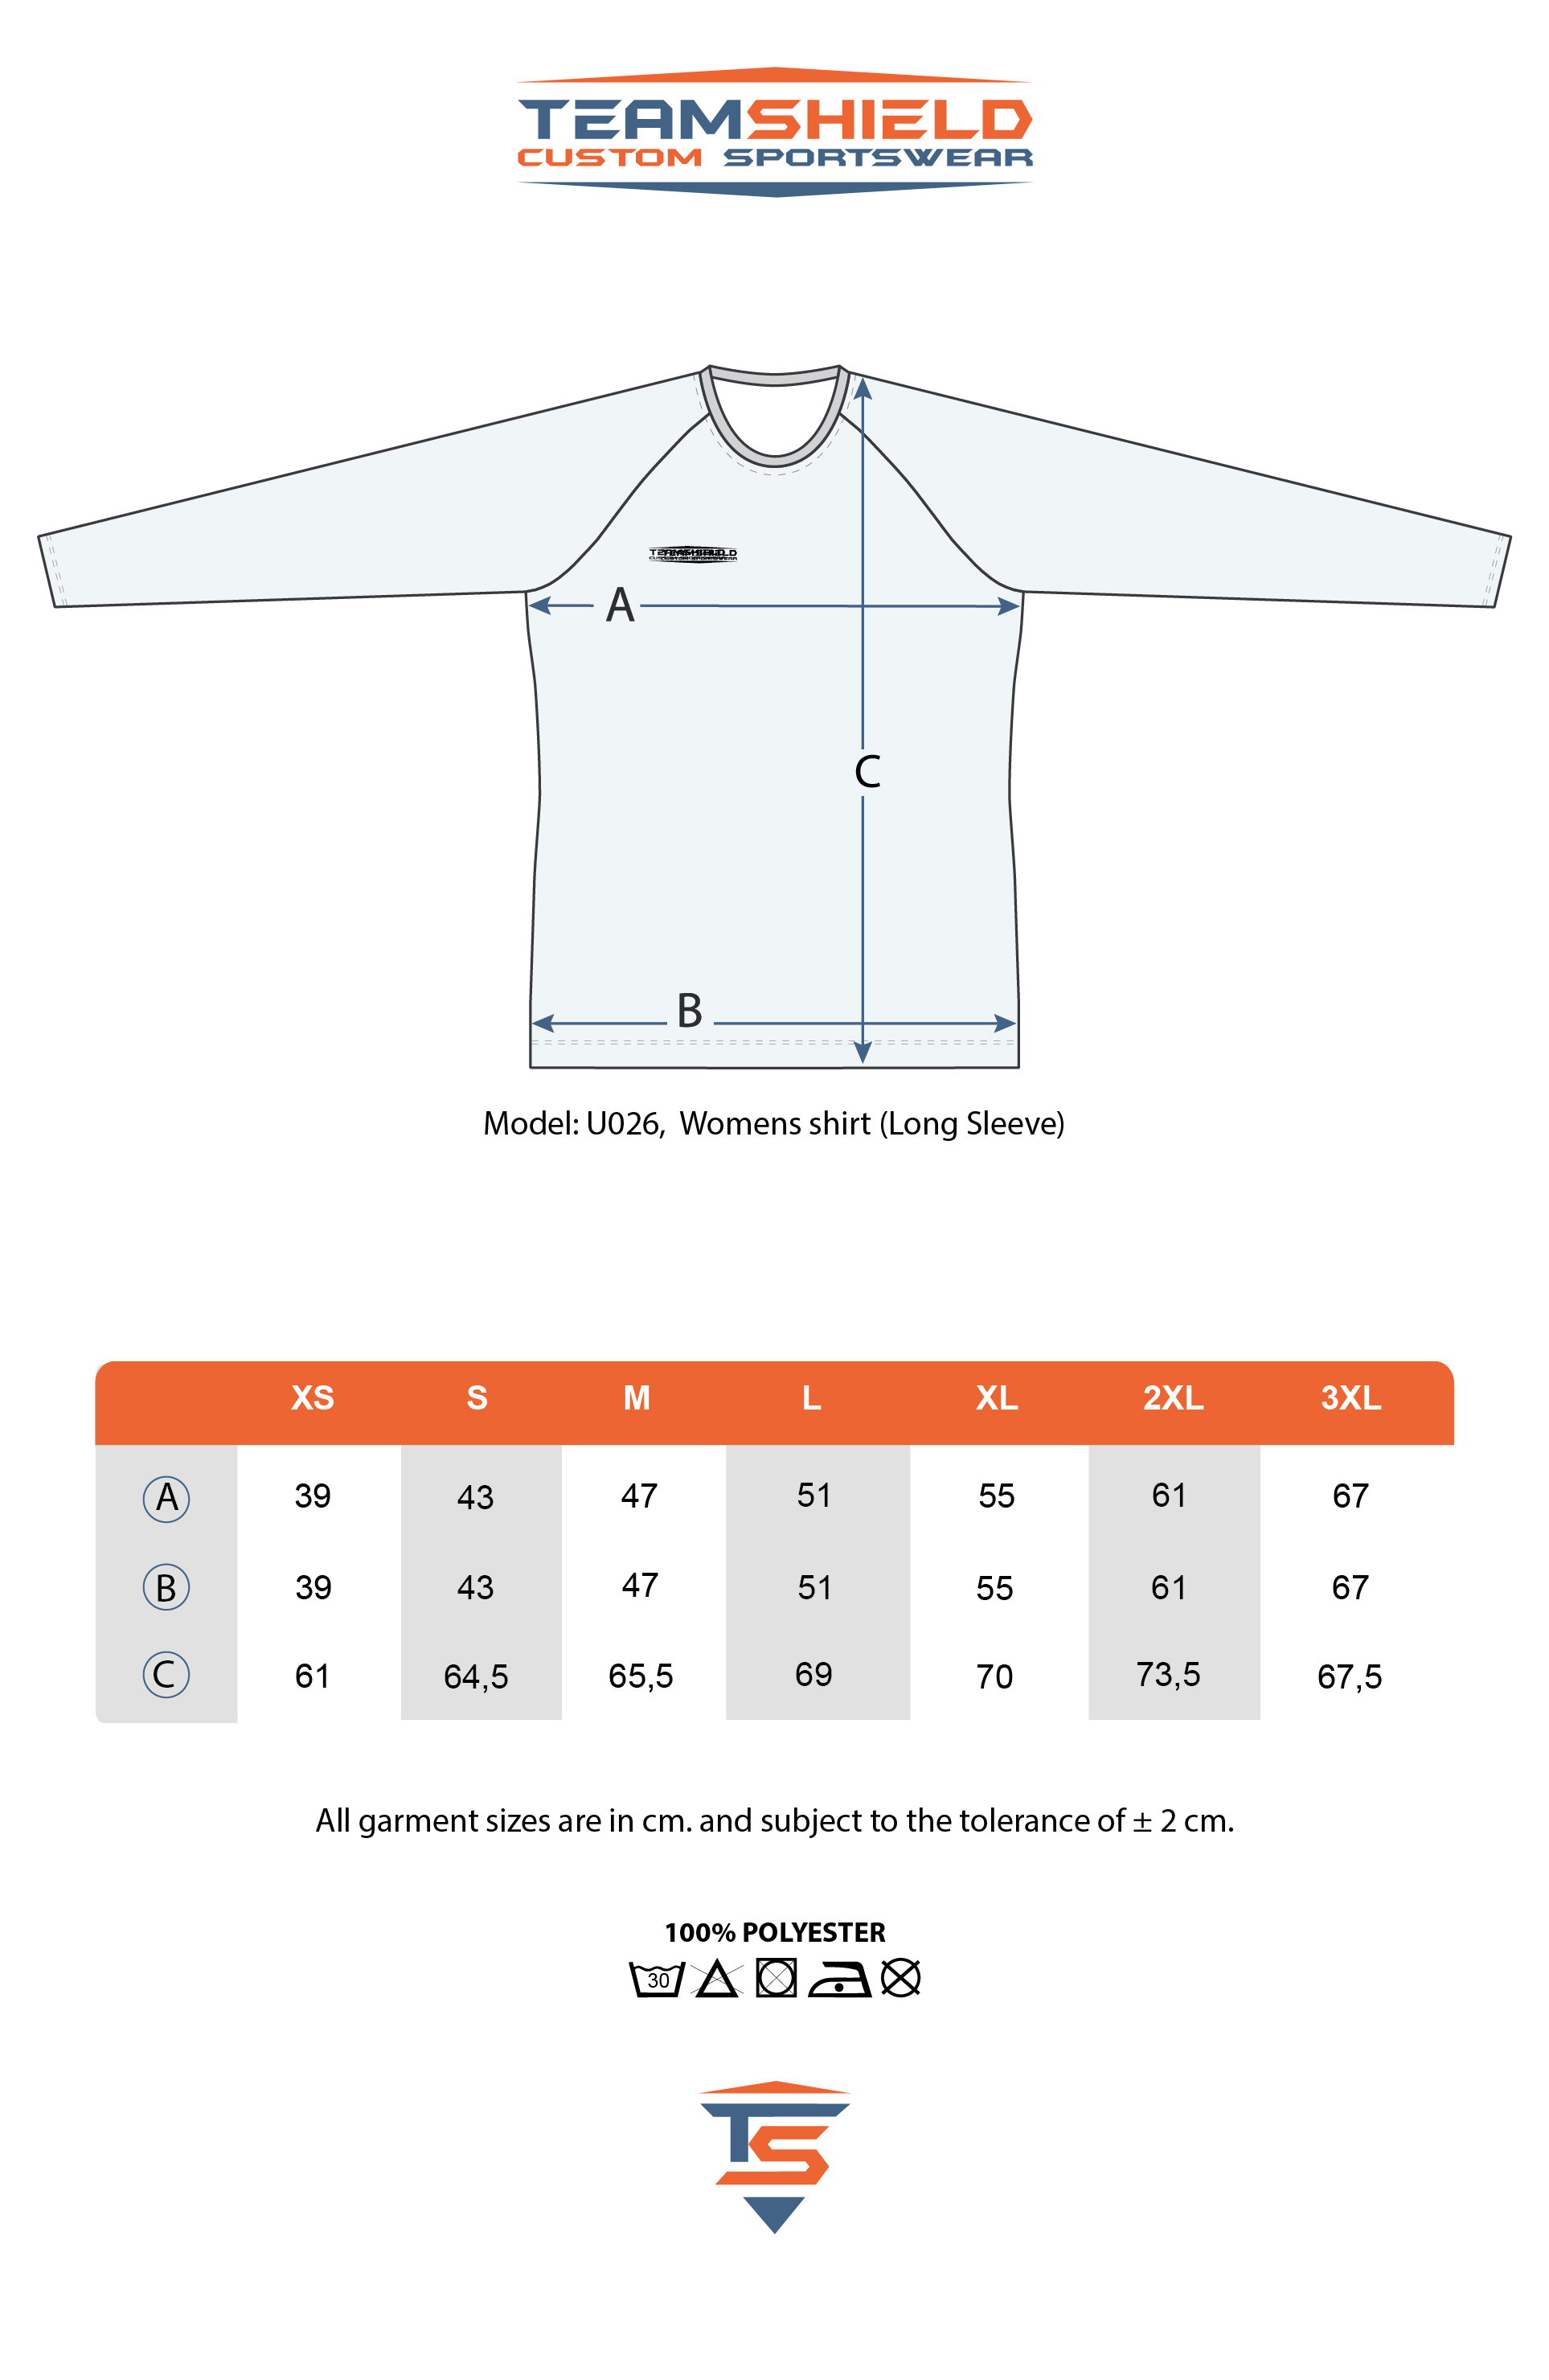 Teamshield-Custom-Teamwear-Sizechart-U026-Sublimation-Shirt-Rekular-Fil-Long-Sleeve